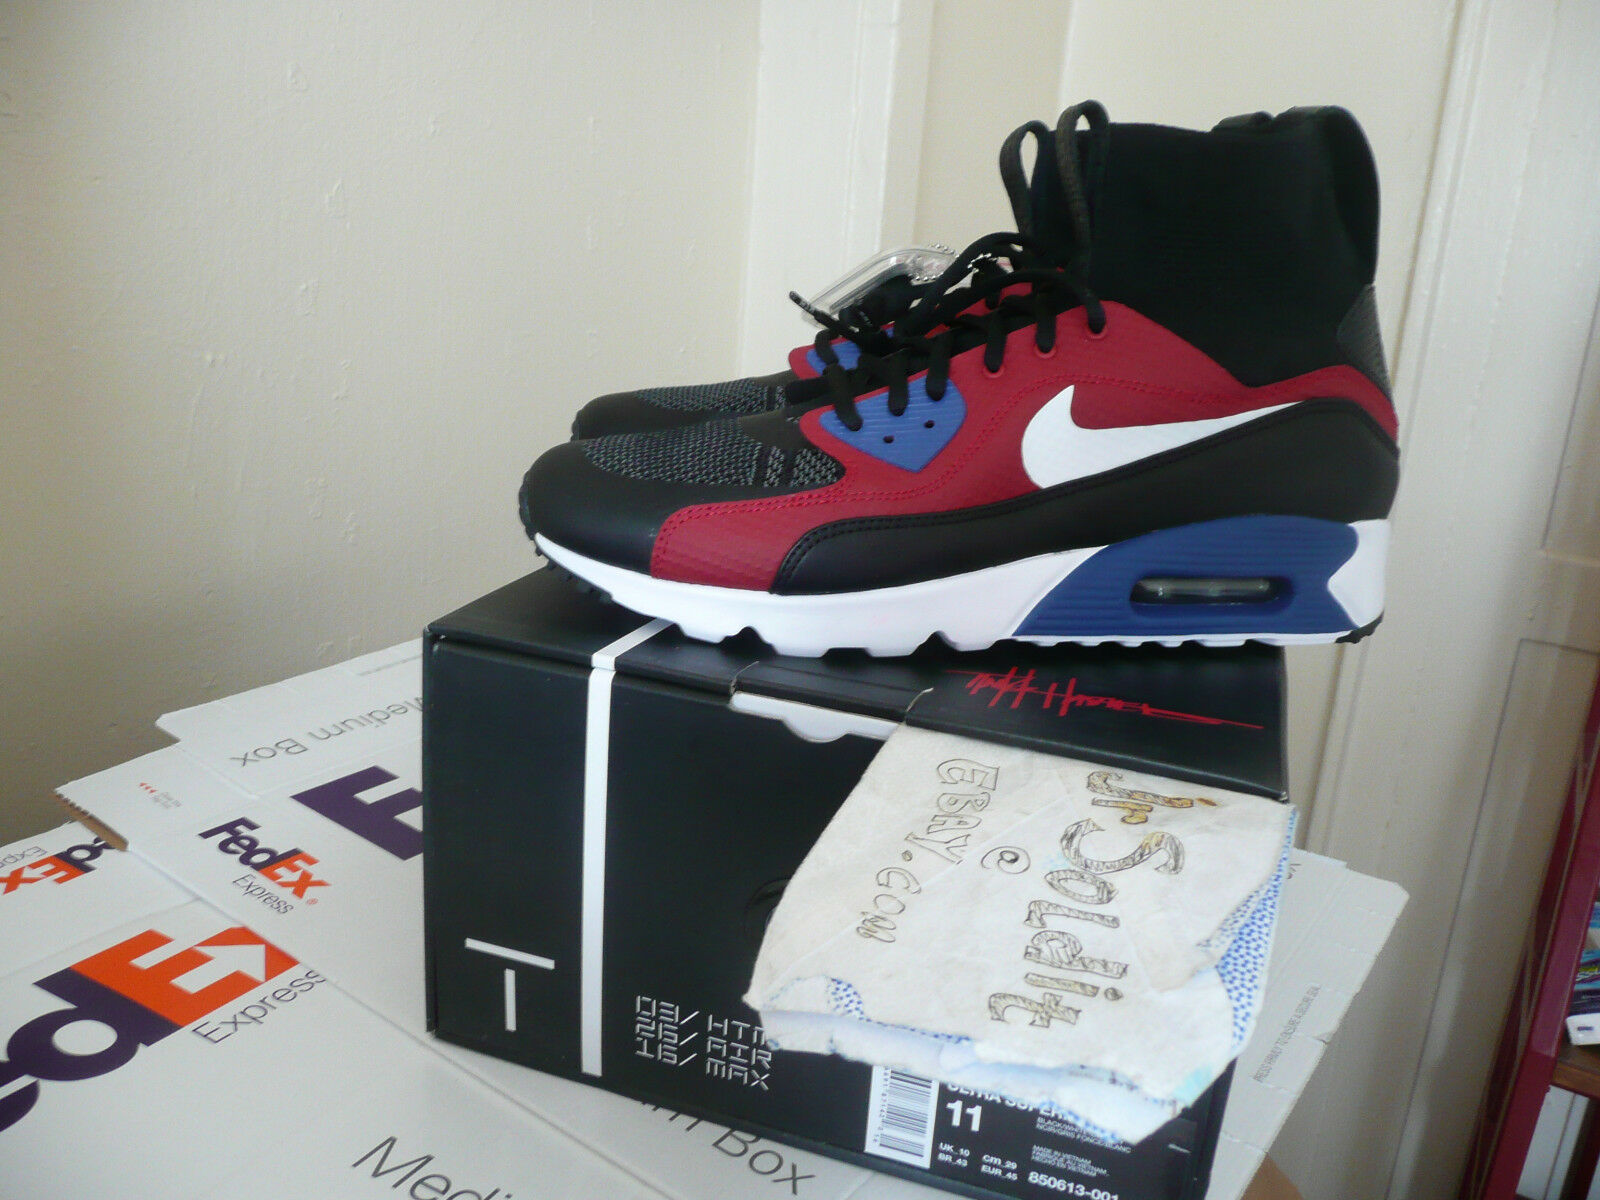 Tinker Hatfield x Nike Air Max 90 Ultra Superfly HTM, Size 11 (2016 AIR MAX DAY)